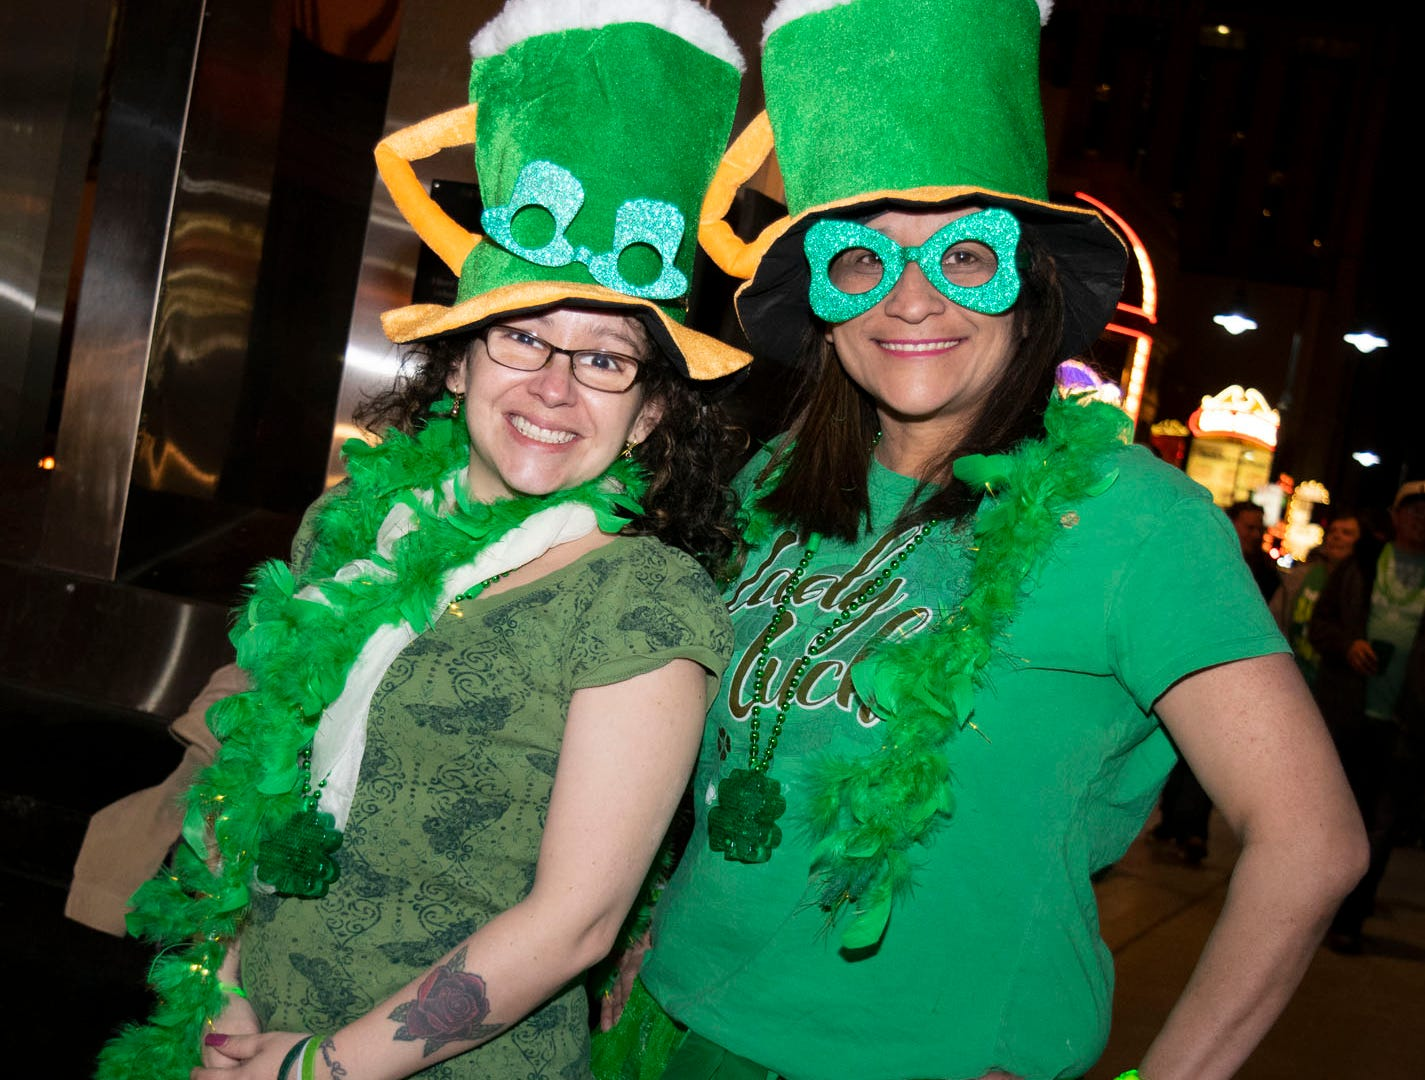 Sisi Parada and Maria Hauck attend the 2019 Leprechaun Crawl on Saturday, March 16, 2019. Reno, Nev.